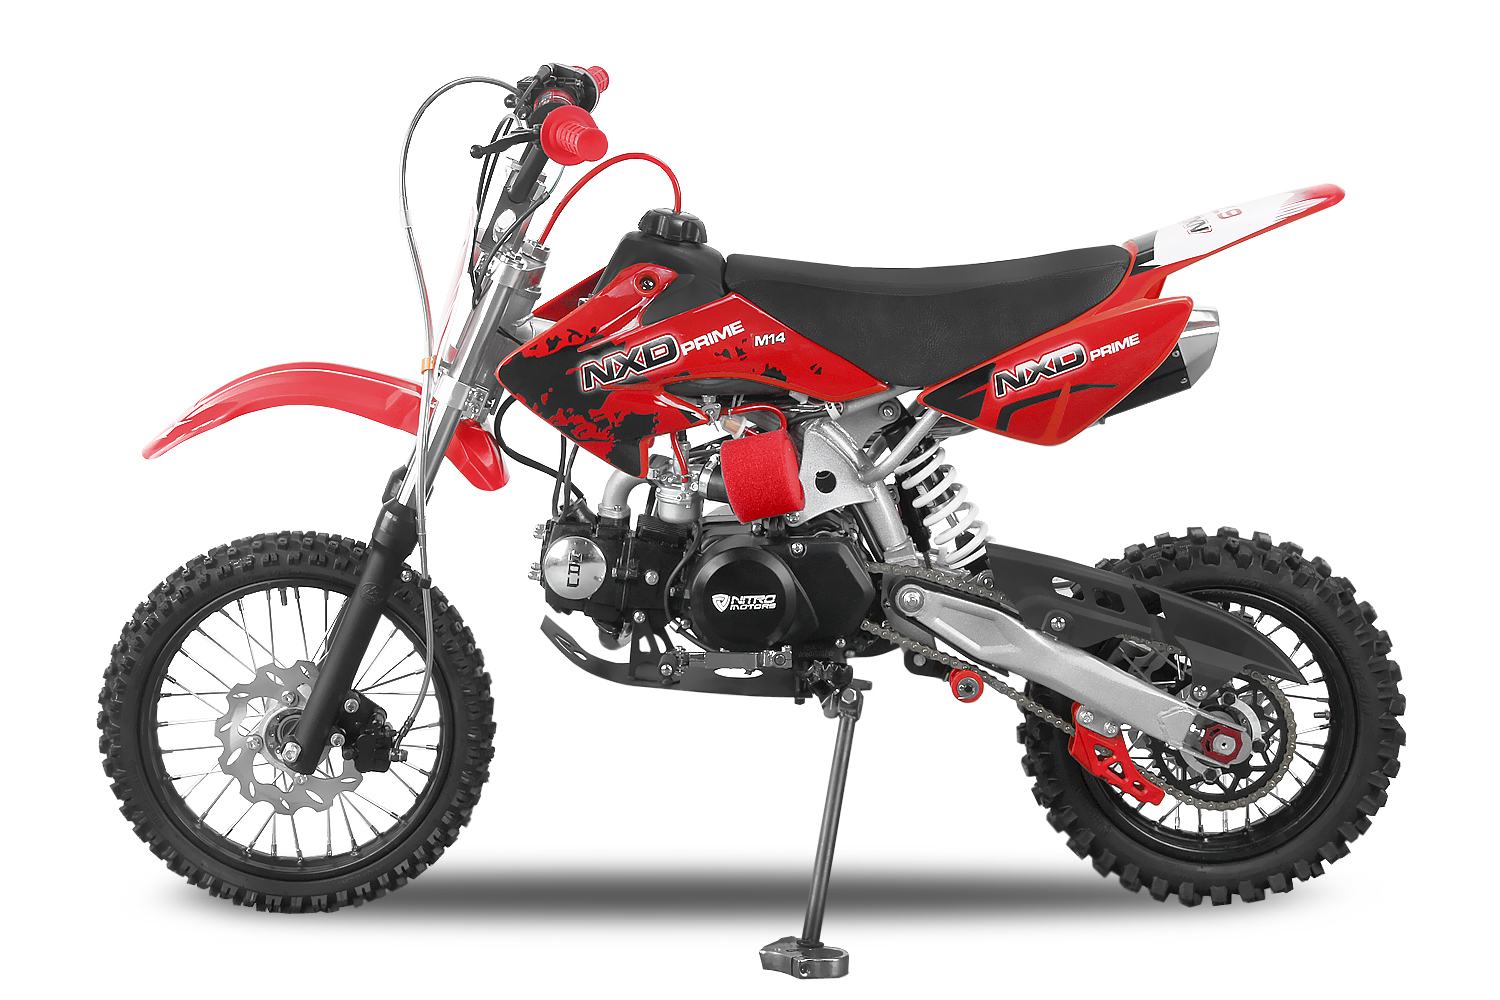 dirtbike 125ccm crossbike enduro motorrad mini cross pitbike motocross 4takter ebay. Black Bedroom Furniture Sets. Home Design Ideas